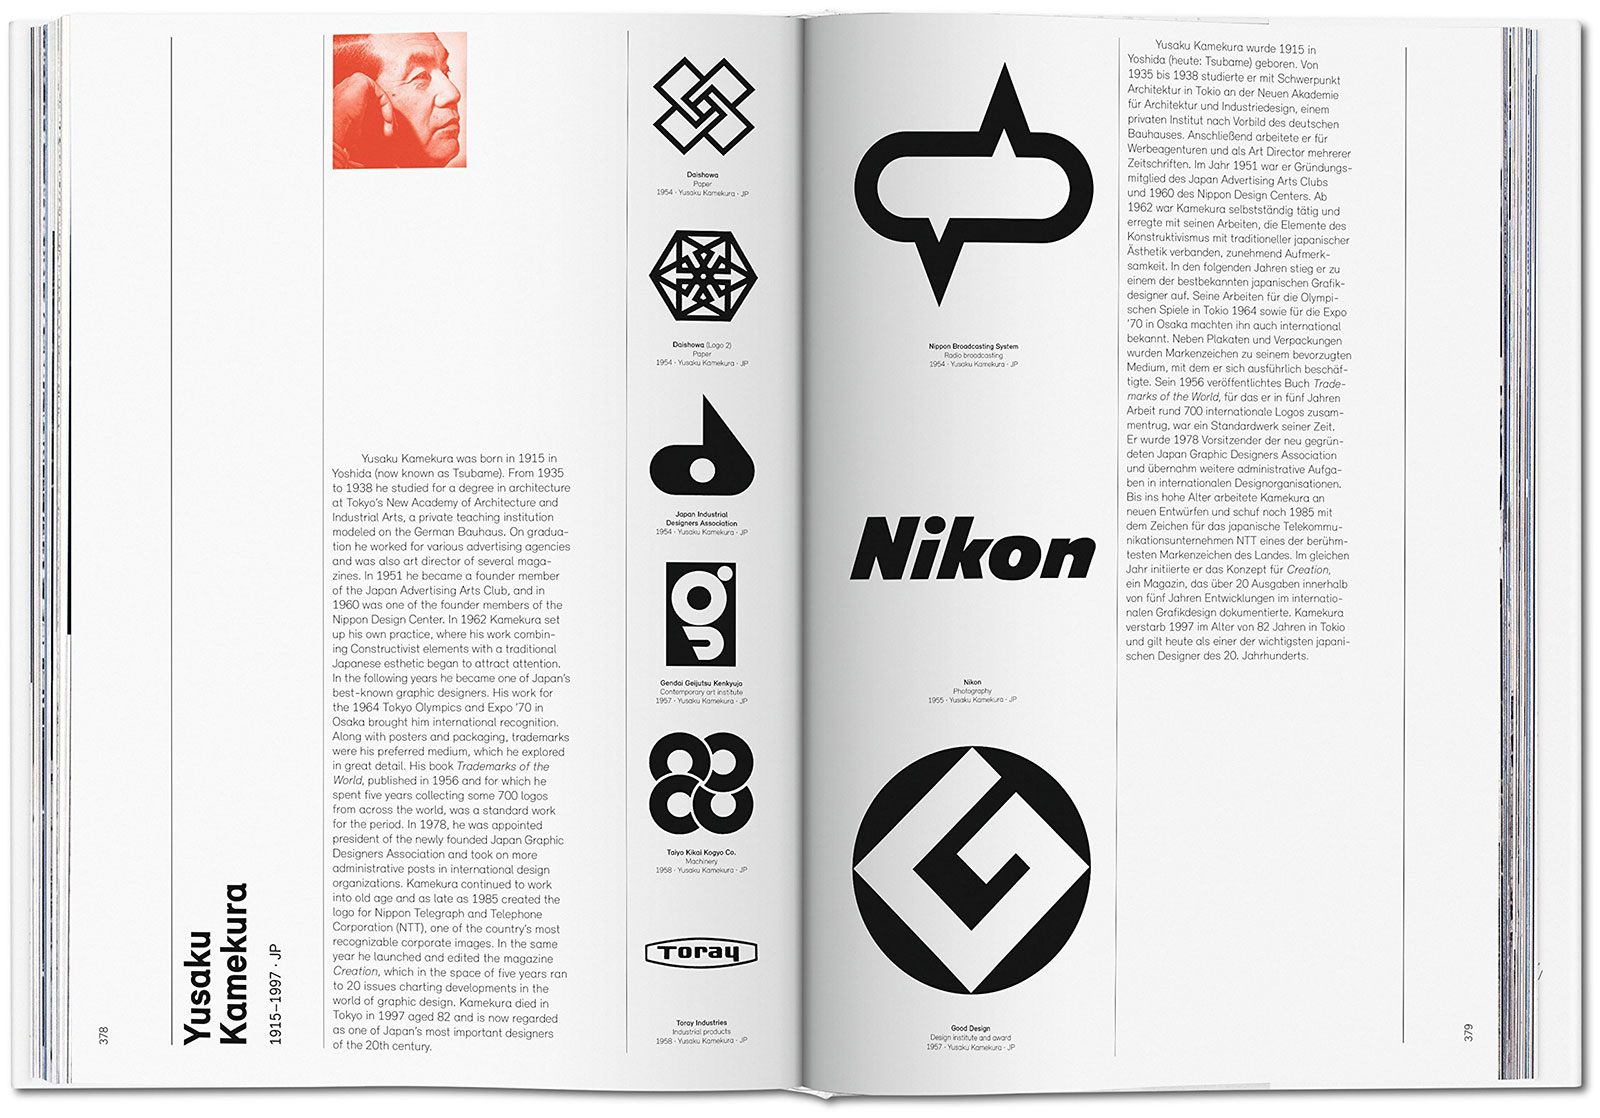 Logo Modernism, the Taschen book, by Jens Müller.